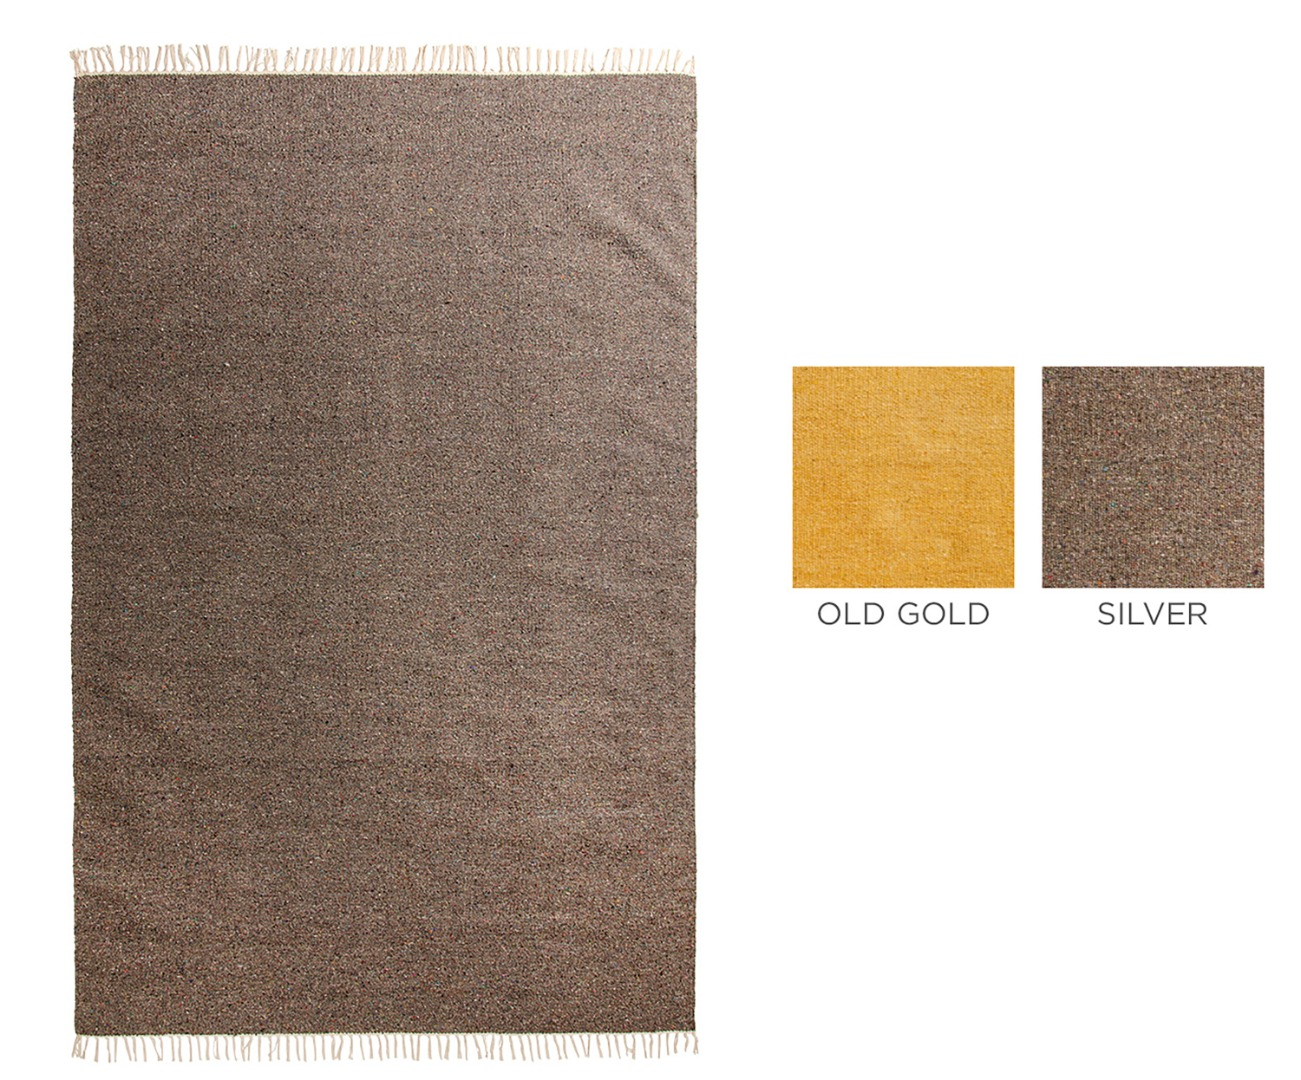 Plain coloured Cotton Yarn Recycled Rug  SIze 140cm x 200cm